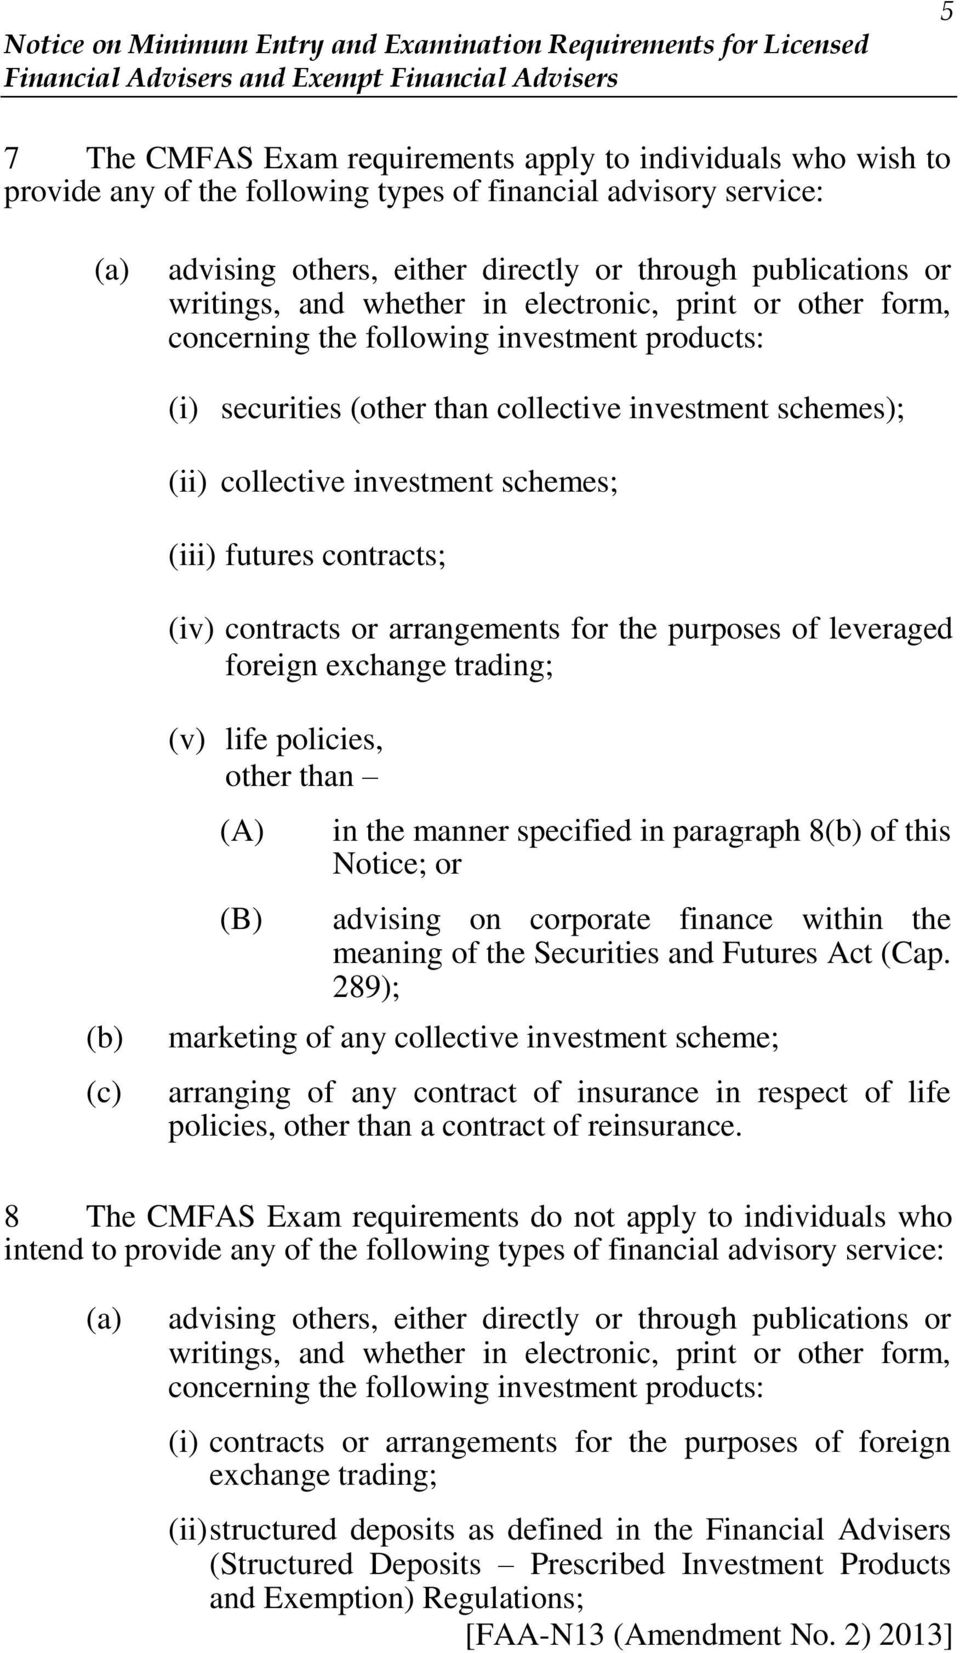 (iii) futures contracts; (iv) contracts or arrangements for the purposes of leveraged foreign exchange trading; (b) (c) (v) life policies, other than (A) (B) in the manner specified in paragraph 8(b)